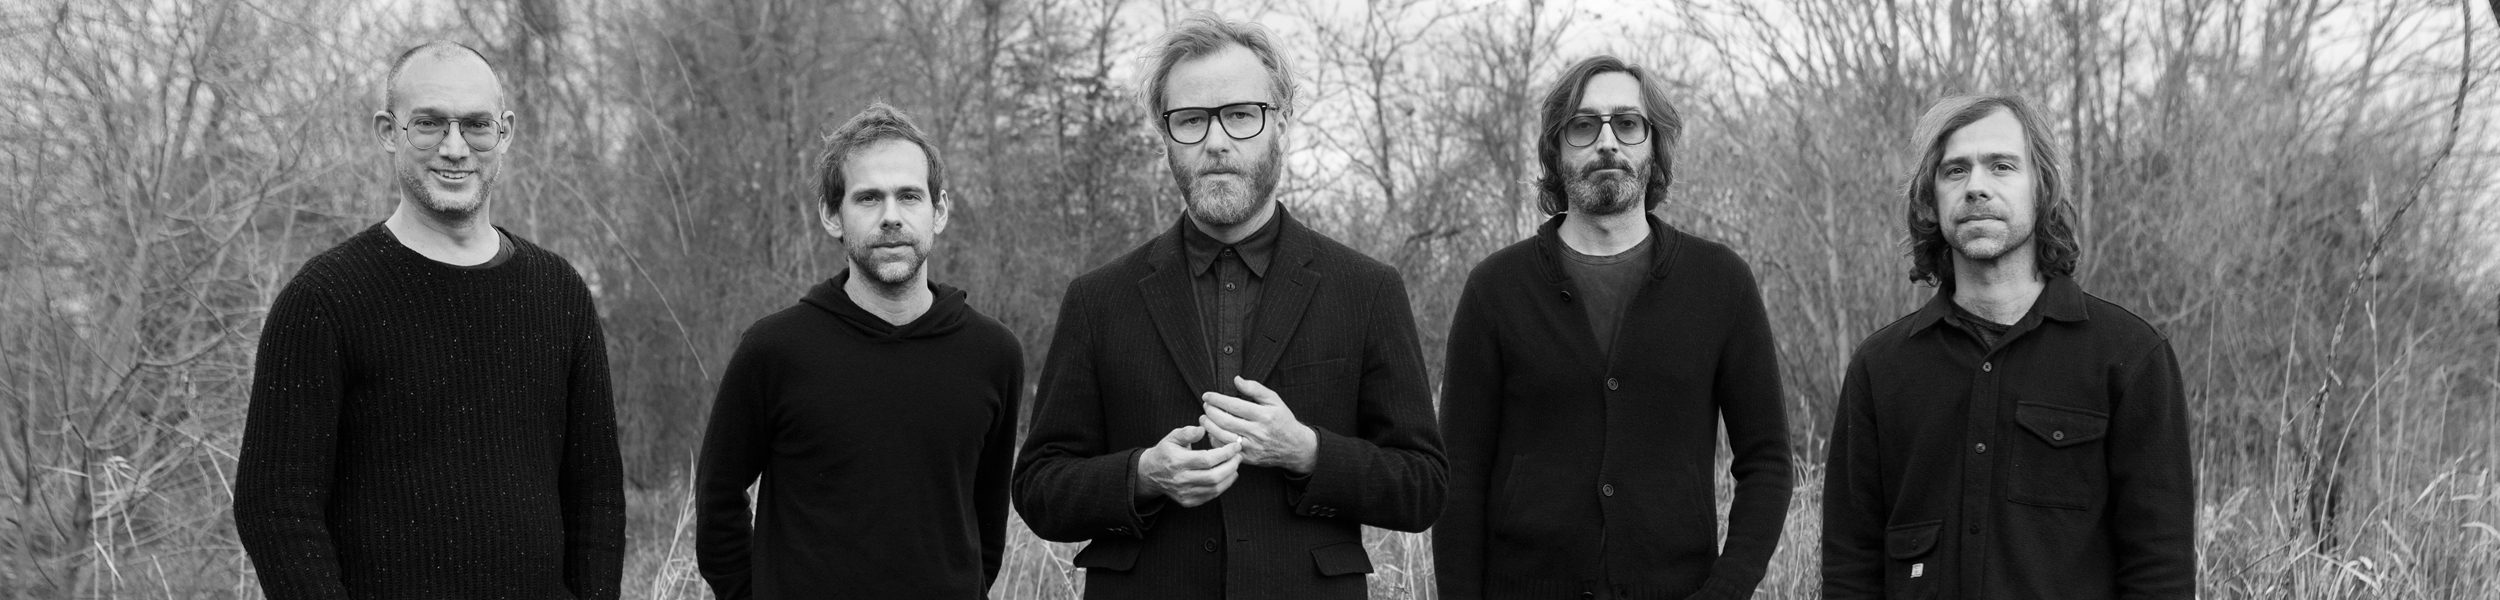 The National - Trouble Will Find Me Nominated For GRAMMY